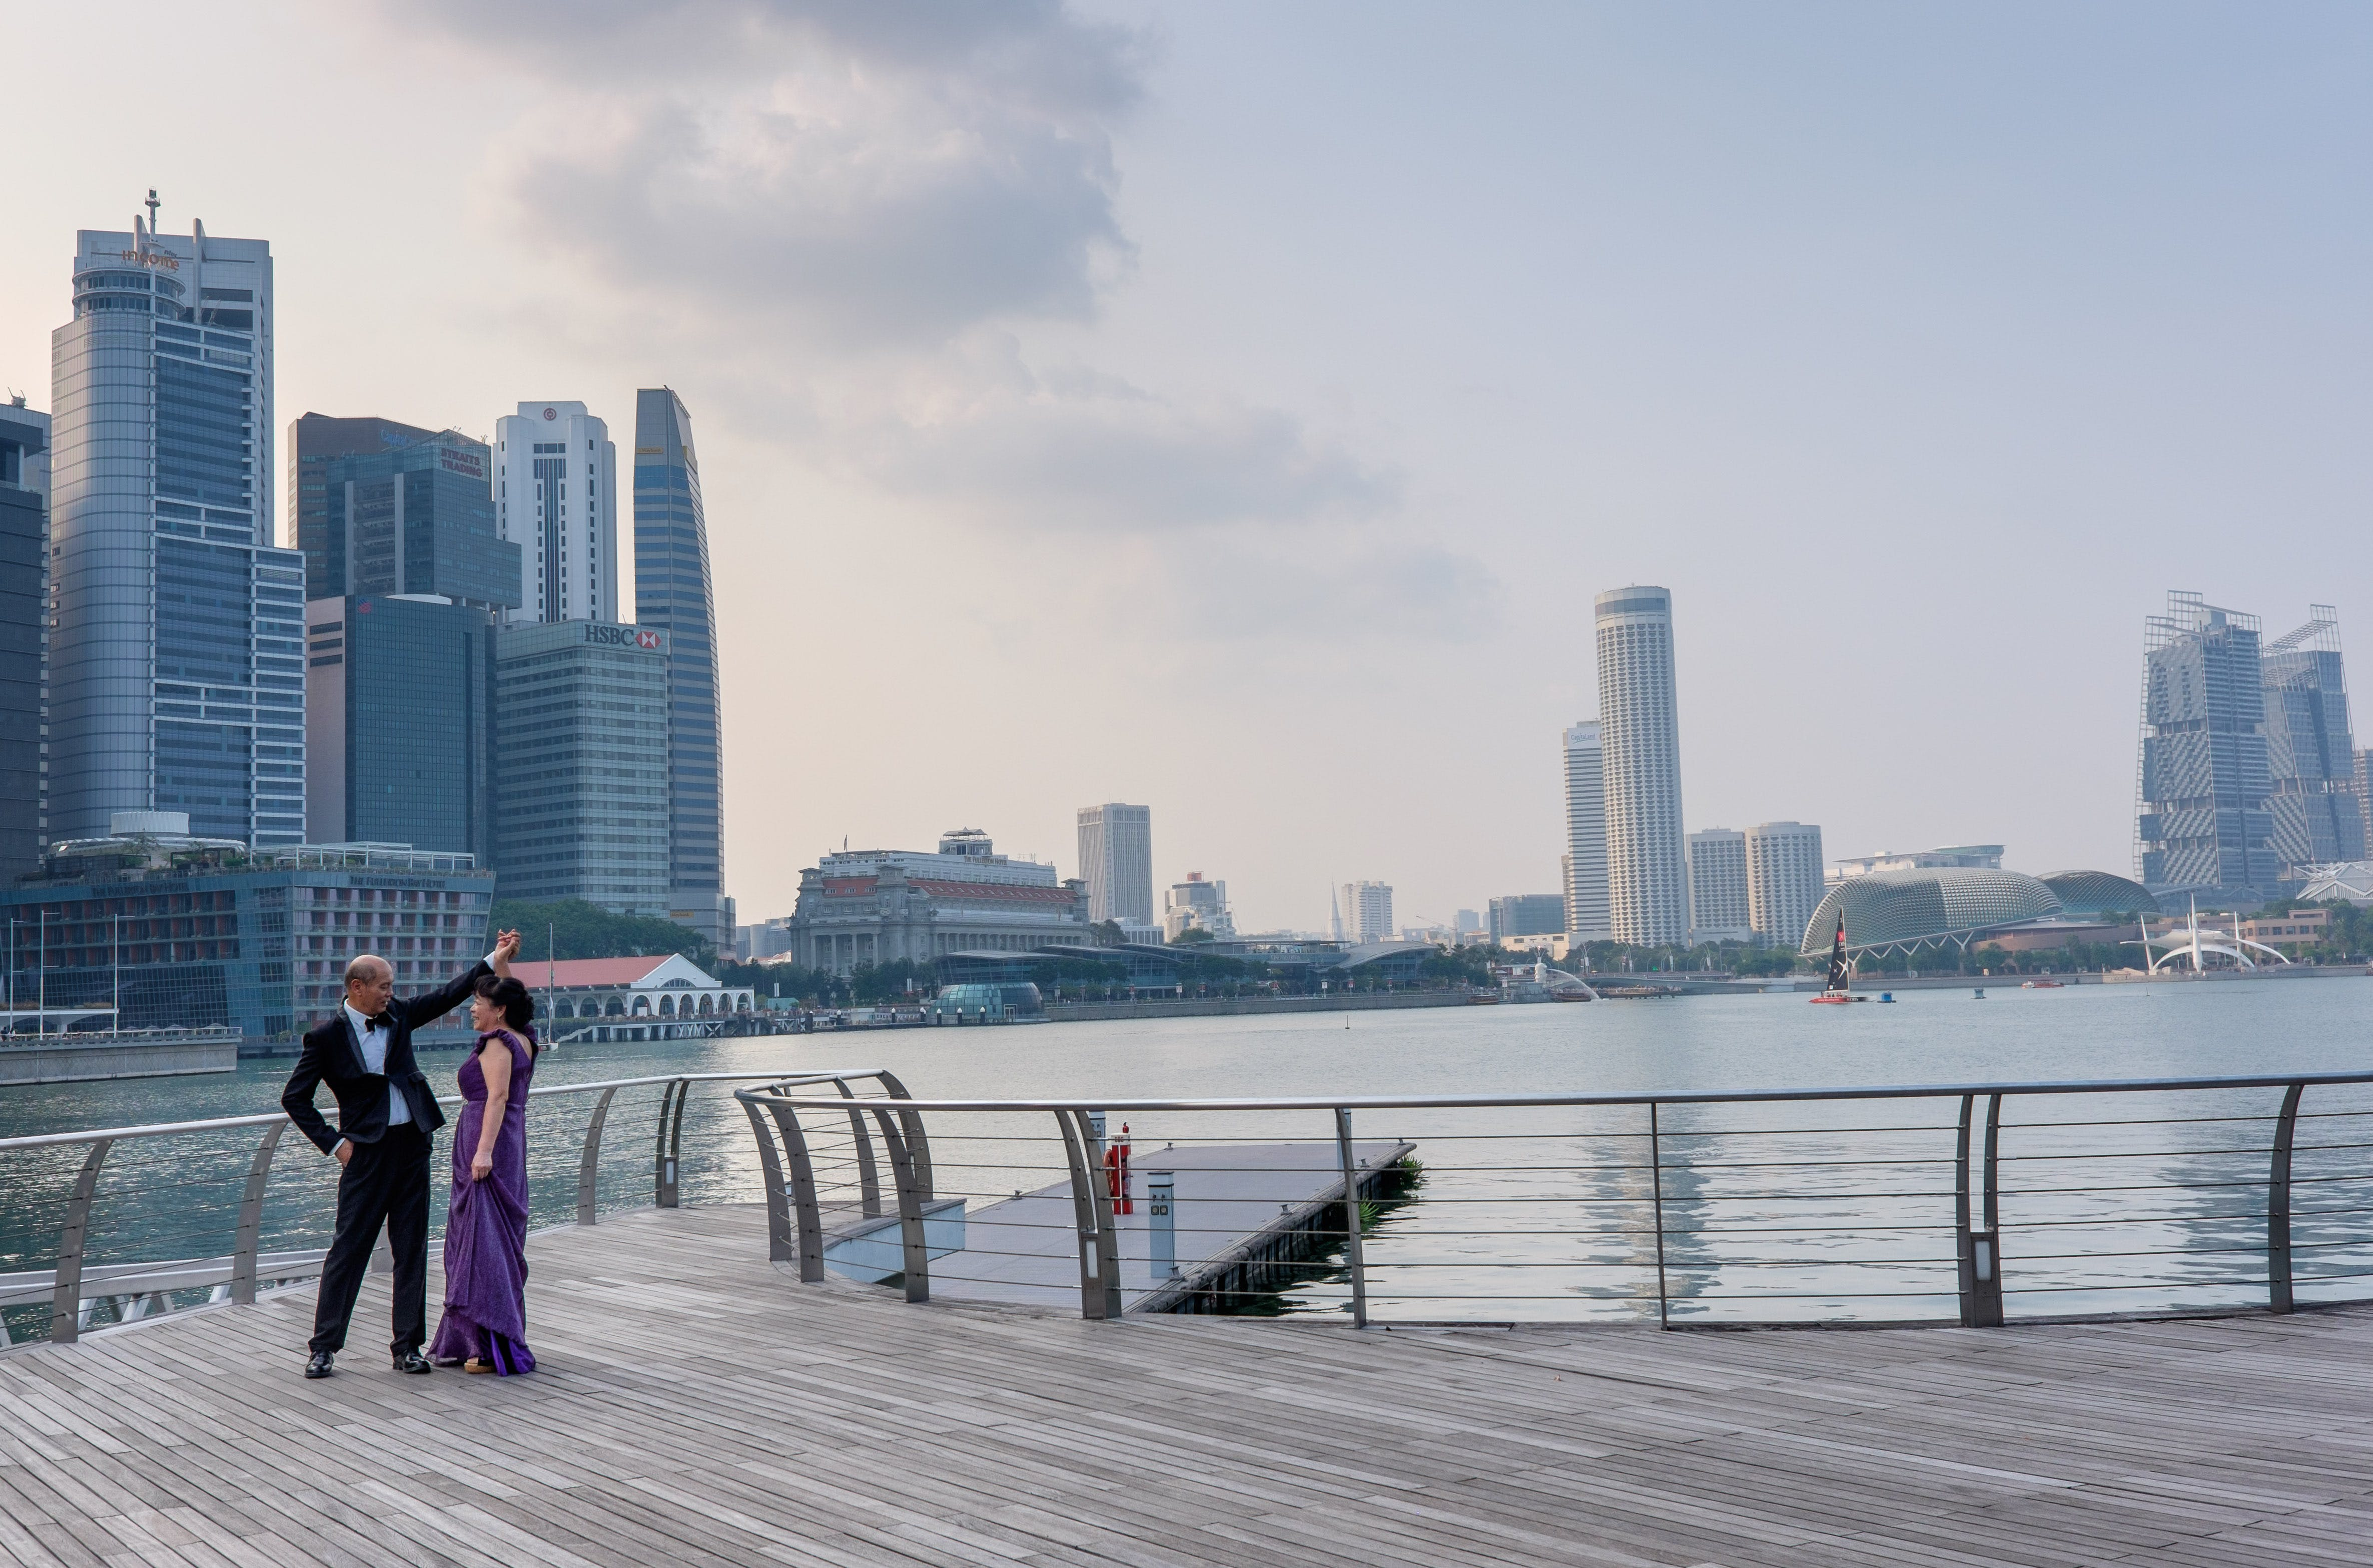 Man and Woman Dancing Beside Body of Water Under White Sky